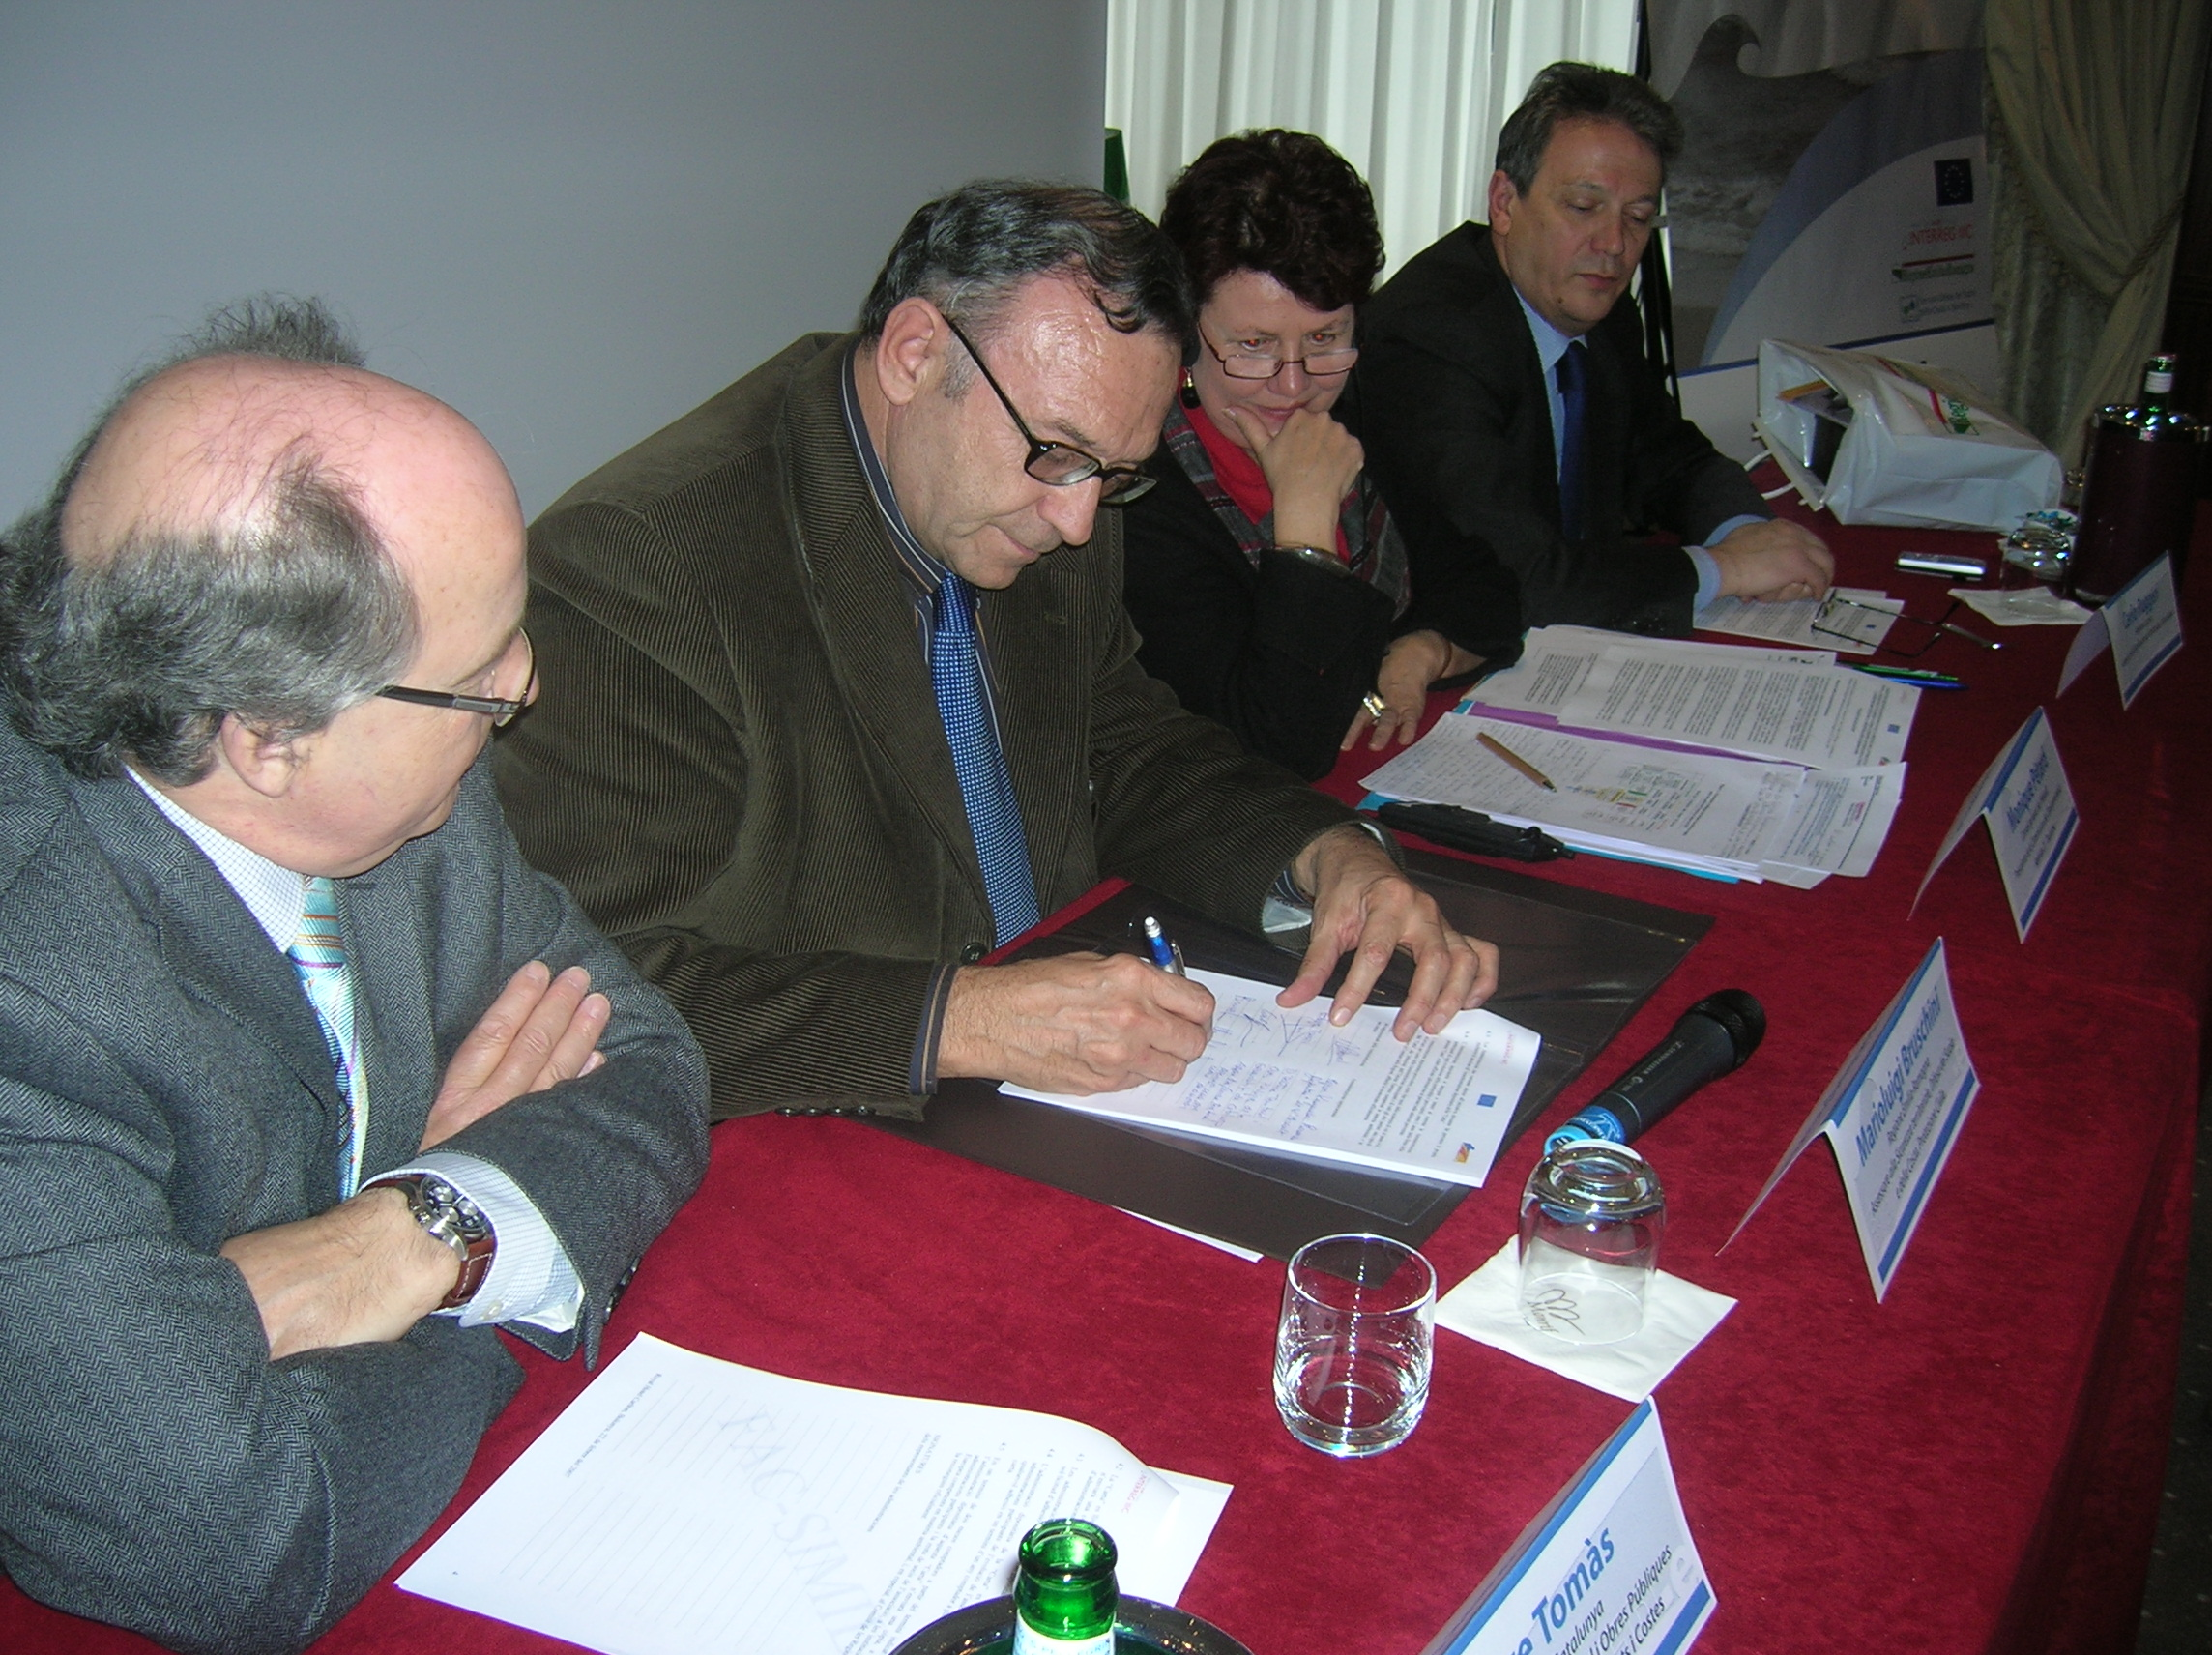 Bologna Charter 2007, born in the BEACHMED-e Regional Framework Operation